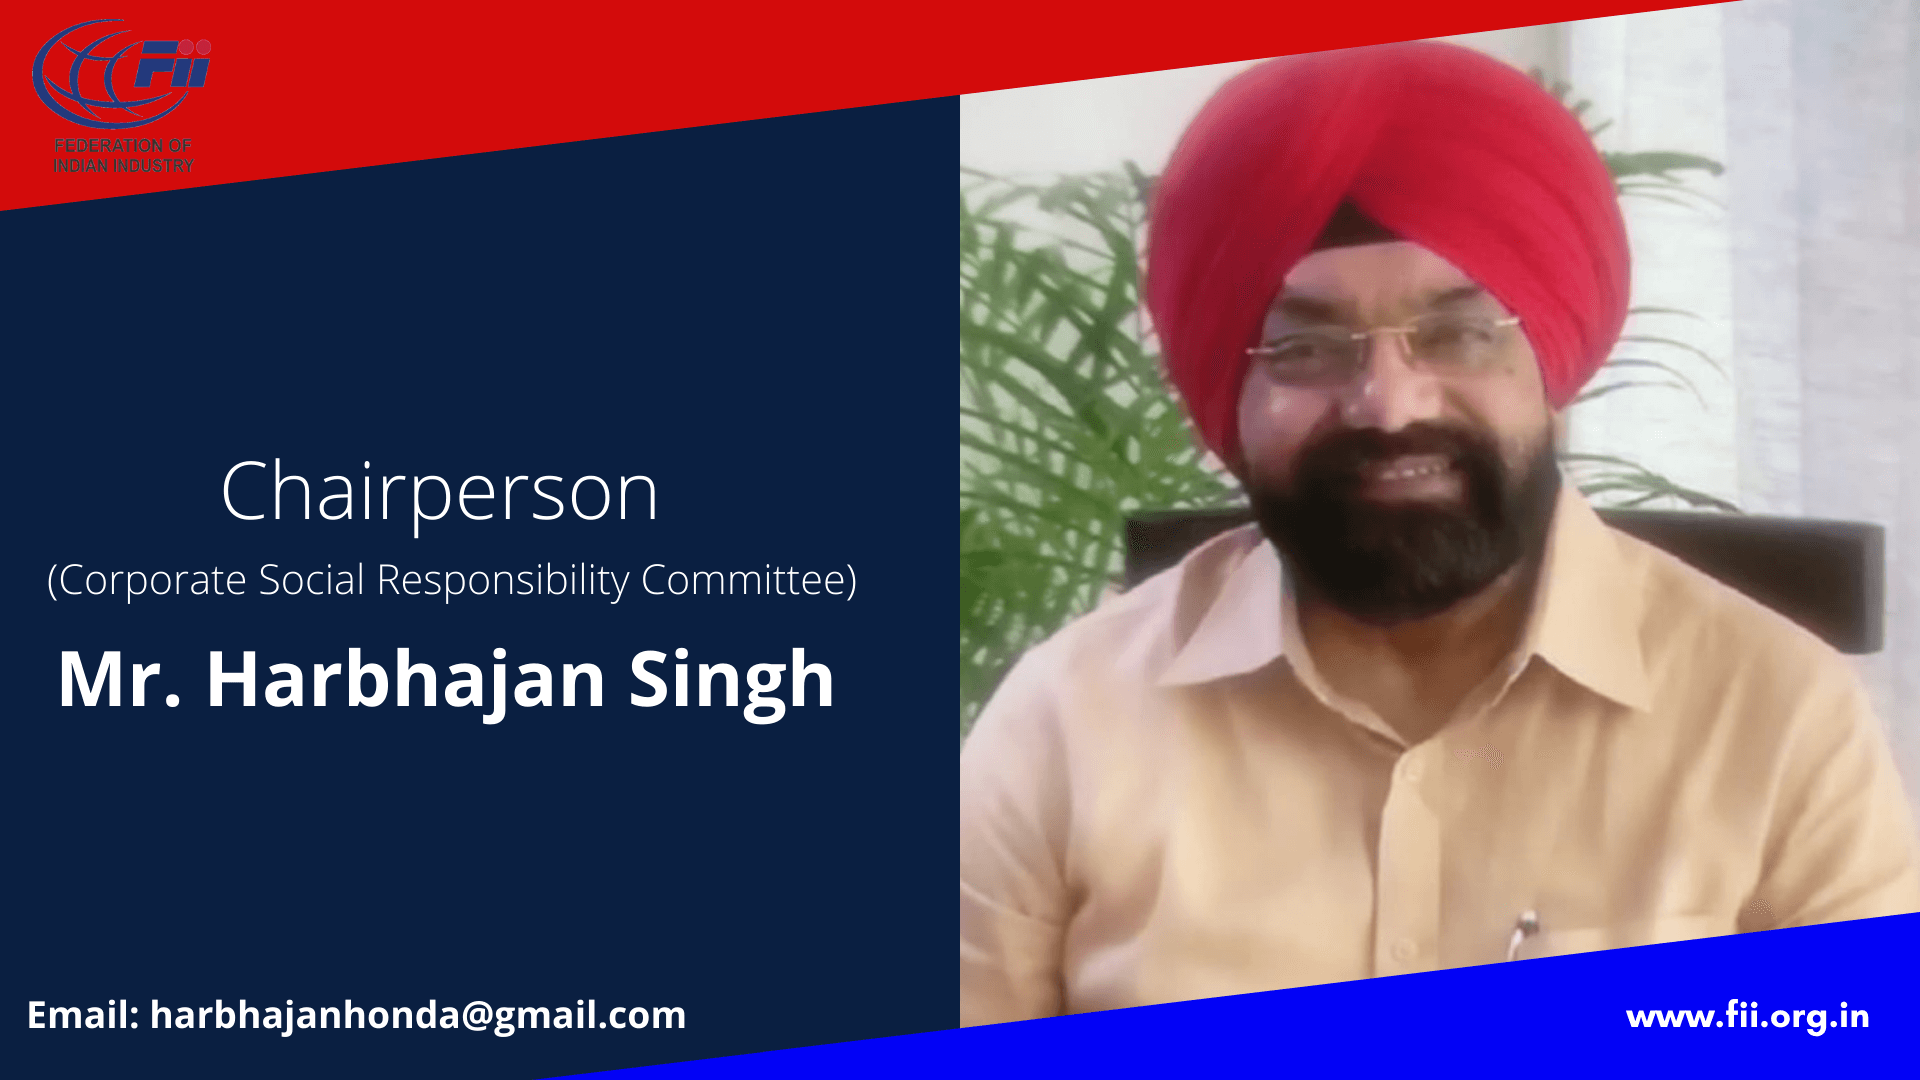 Mr. Harbhajan Singh, Chairperson, Corporate Social Responsibility Committee